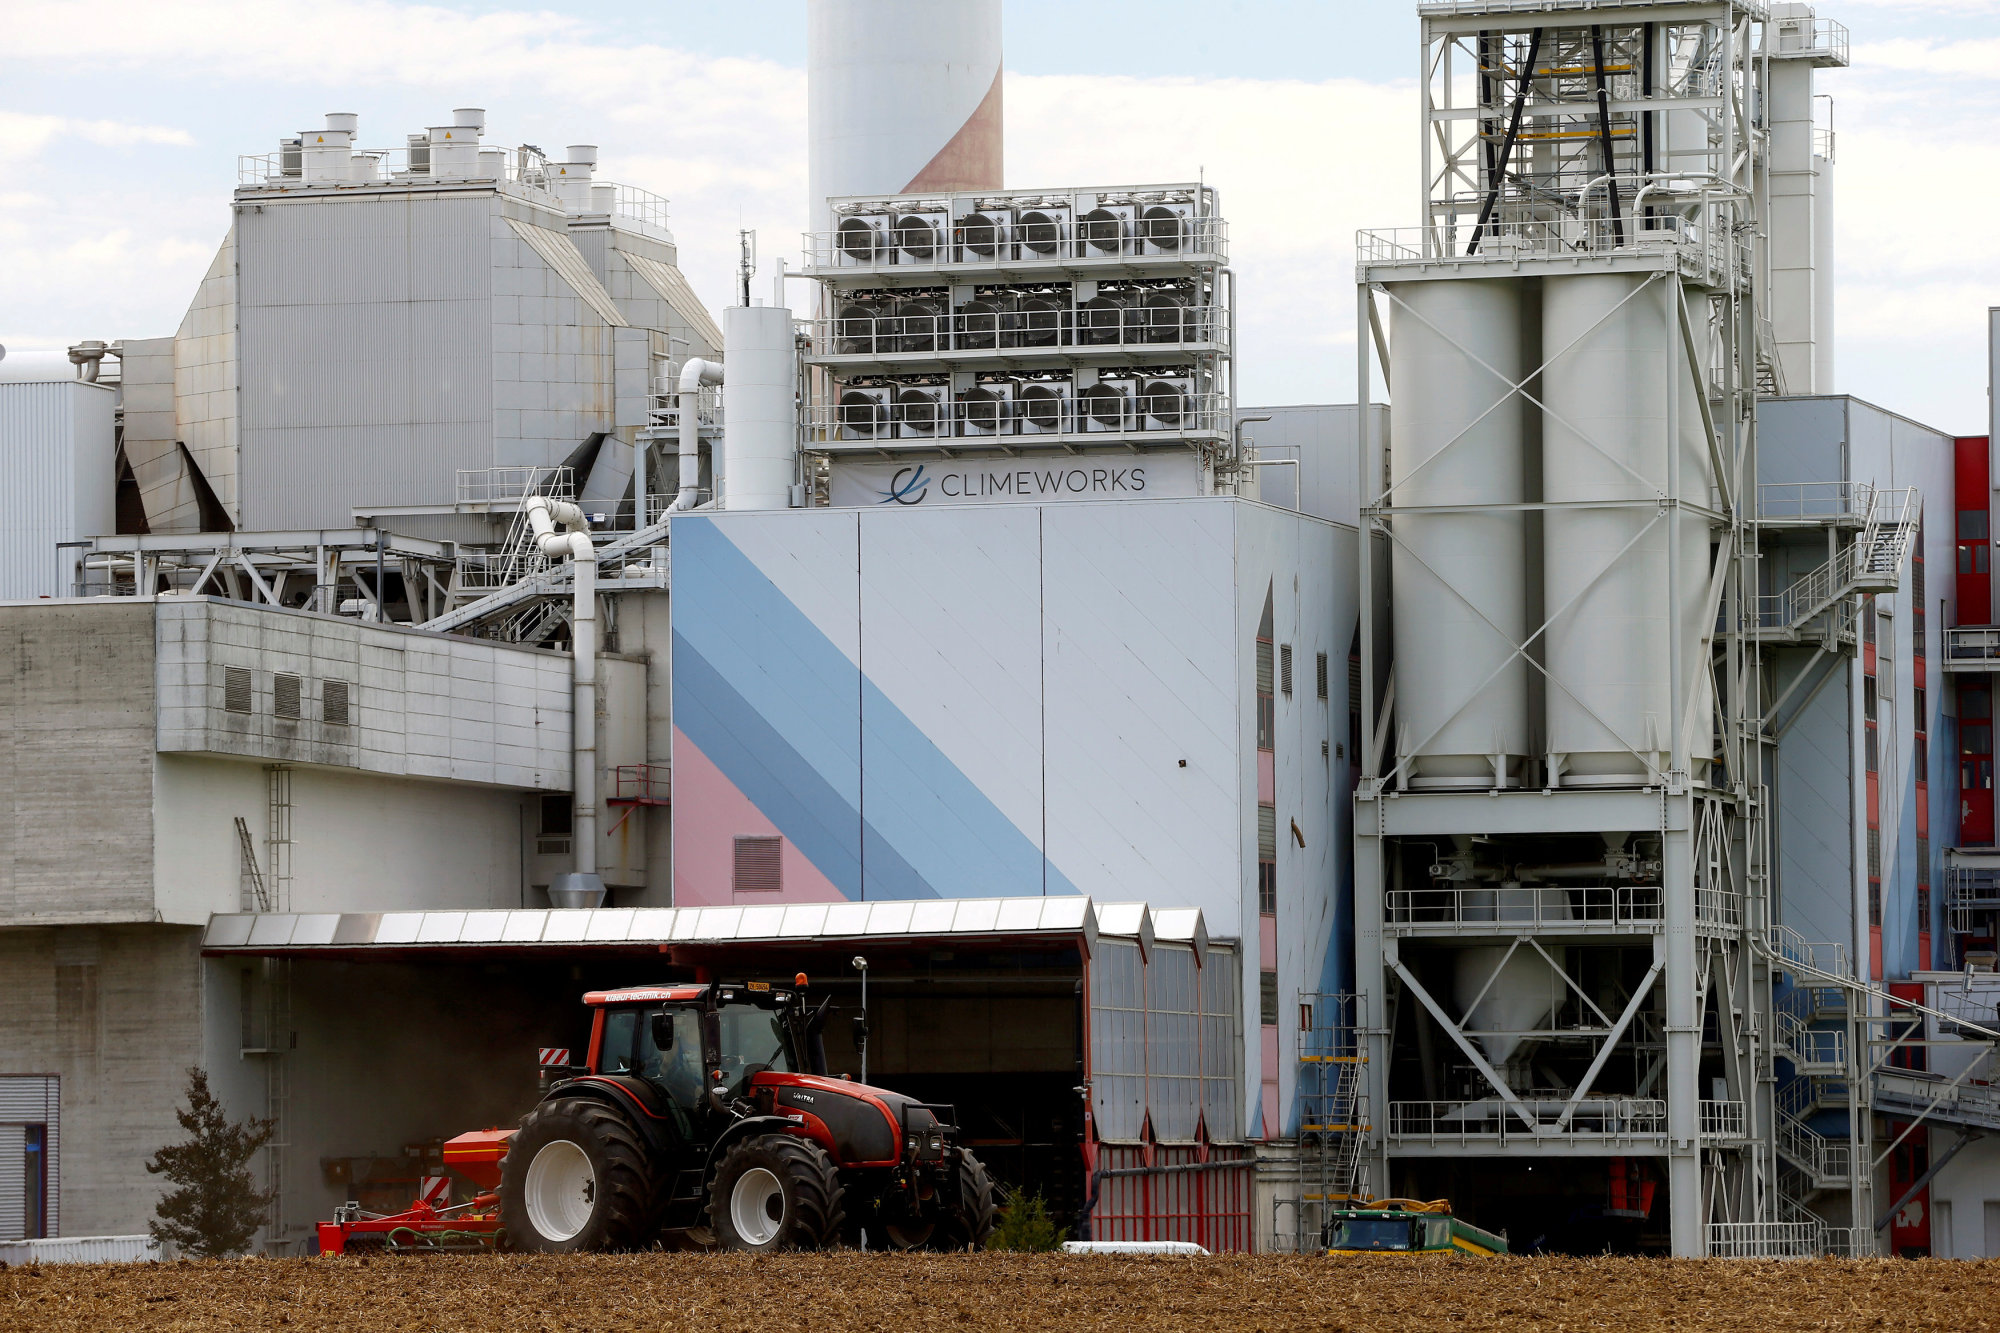 A Climeworks facility for capturing carbon dioxide stands on the roof of a waste incineration plant in Hinwil, Switzerland, on July 18. | REUTERS